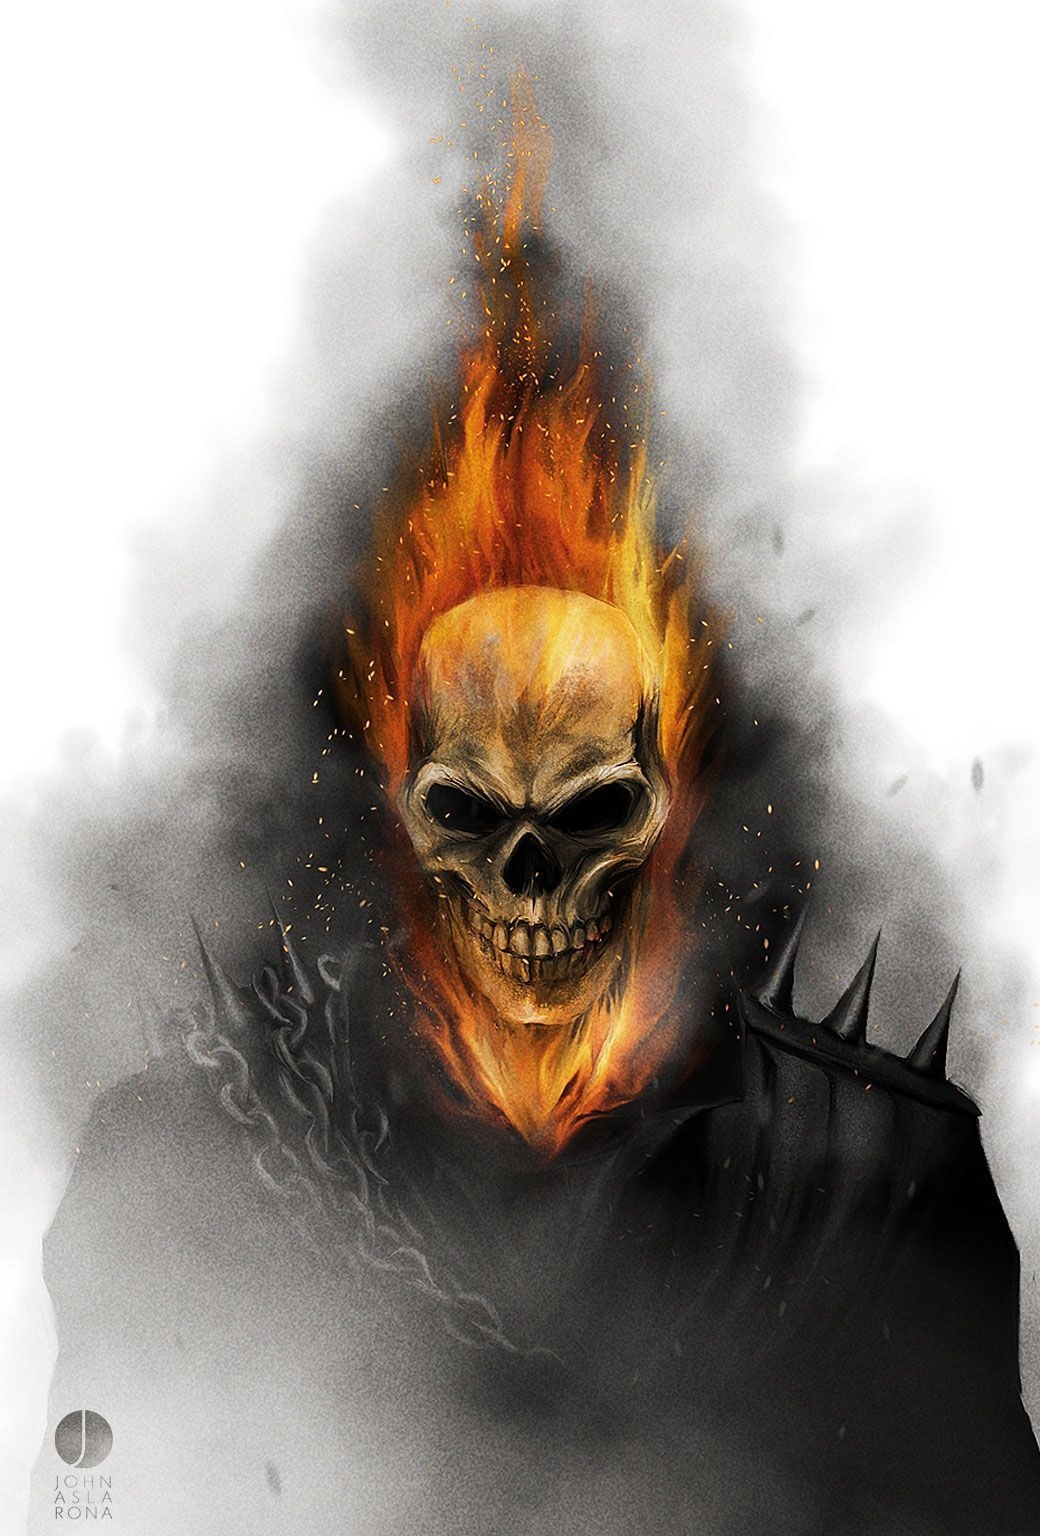 Ghost Rider Wallpapers Top Free Ghost Rider Backgrounds Wallpaperaccess Ghost Rider Wallpaper Ghost Rider Marvel Ghost Rider Tattoo